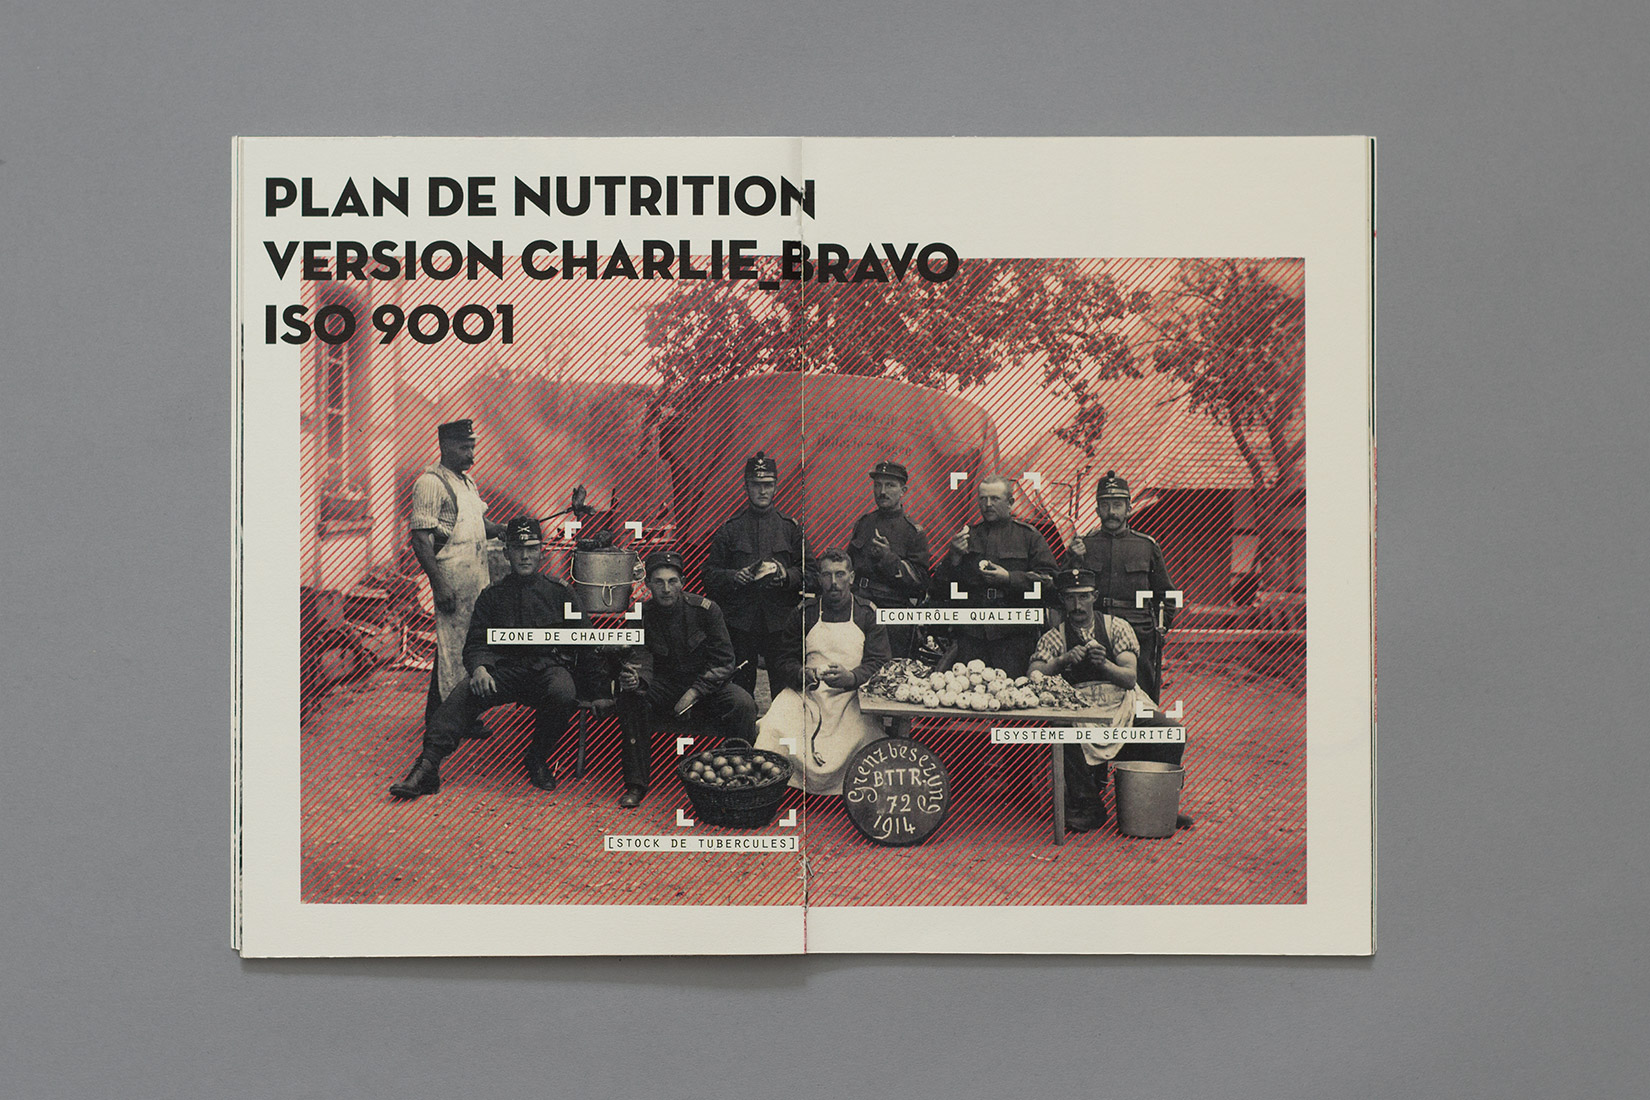 Manual for the perfect little soldier, nutrition plan version charlie_bravo iso 9001, Soldiers peeling potatoes